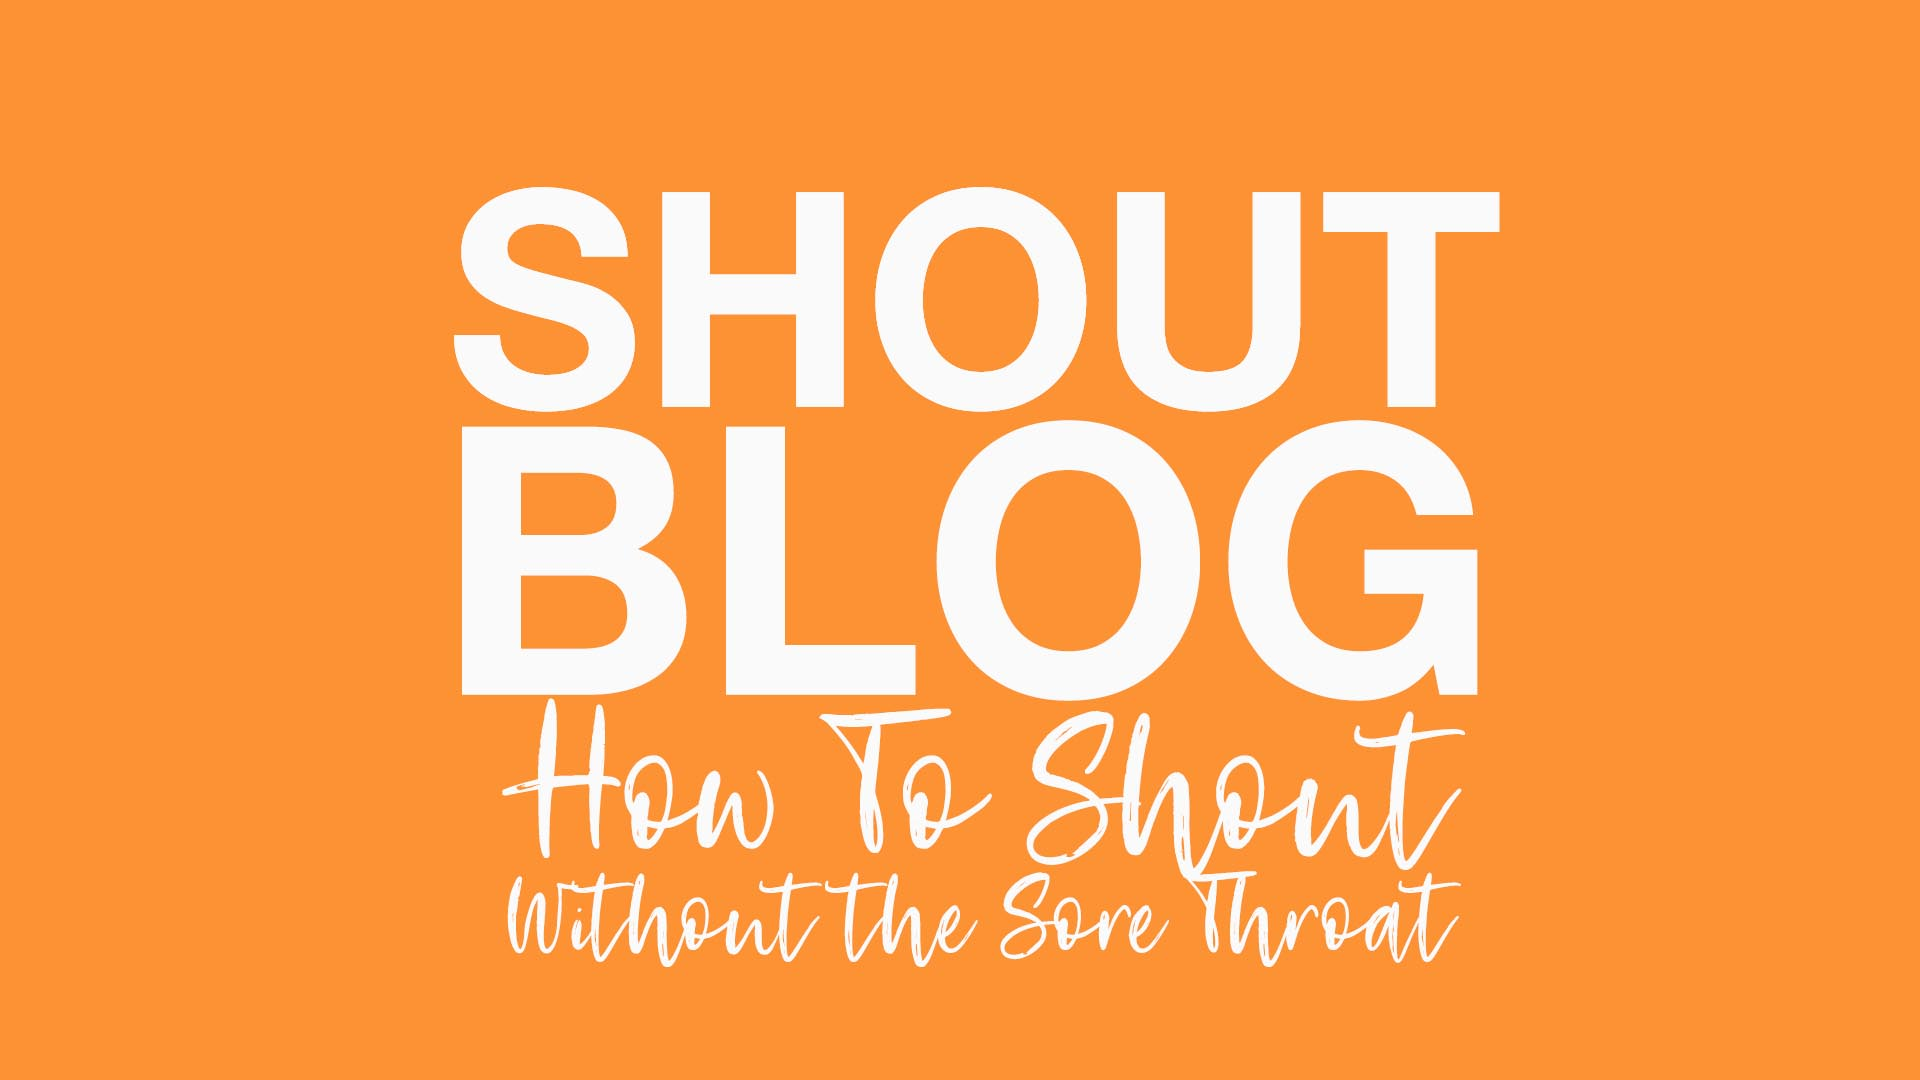 SHOUT! | 'How To SHOUT, Without the Sore Throat'